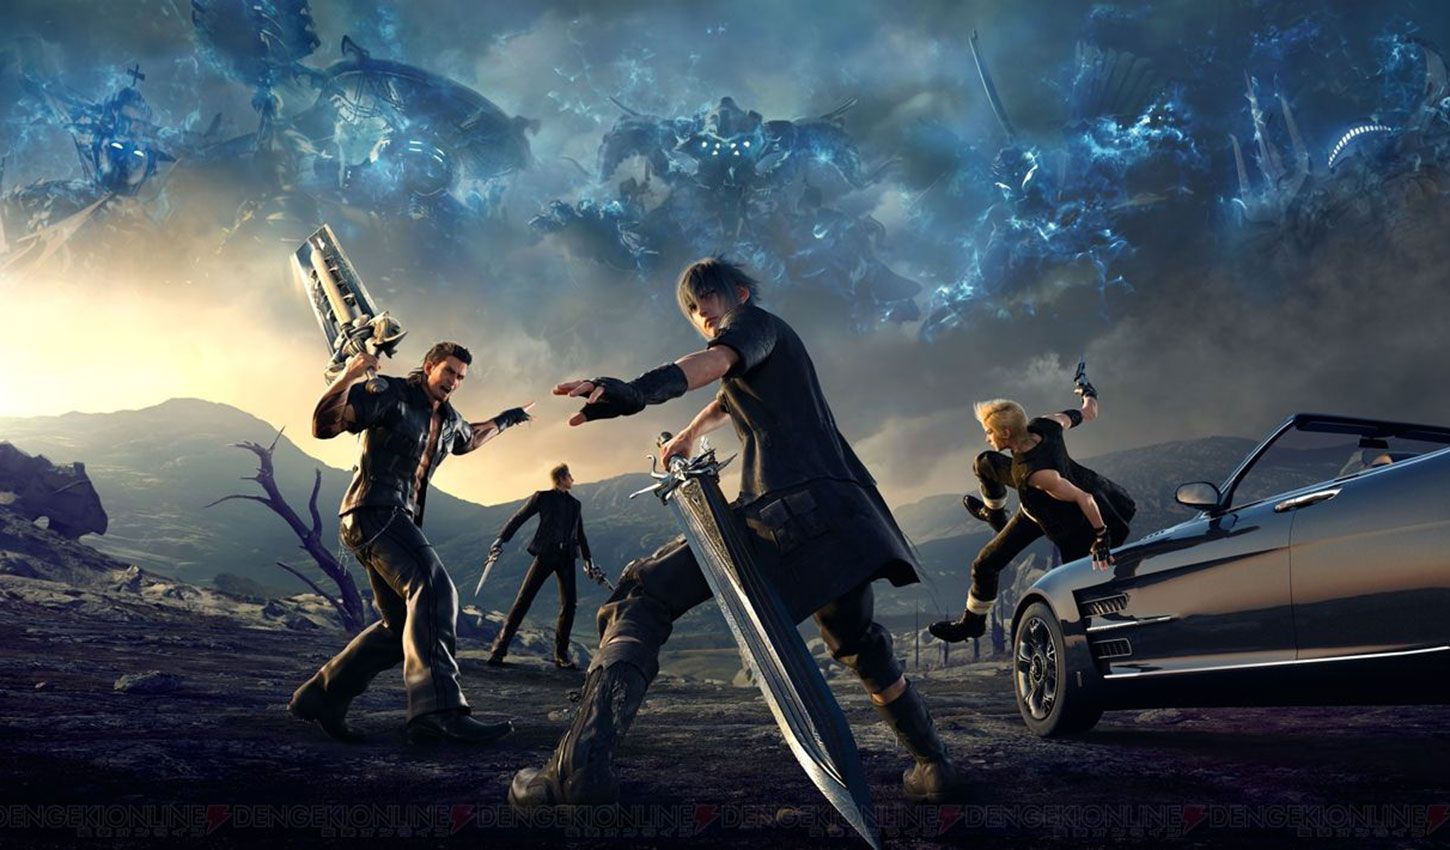 Final Fantasy Xv A New Empire Made 375 Million In 2018 Final